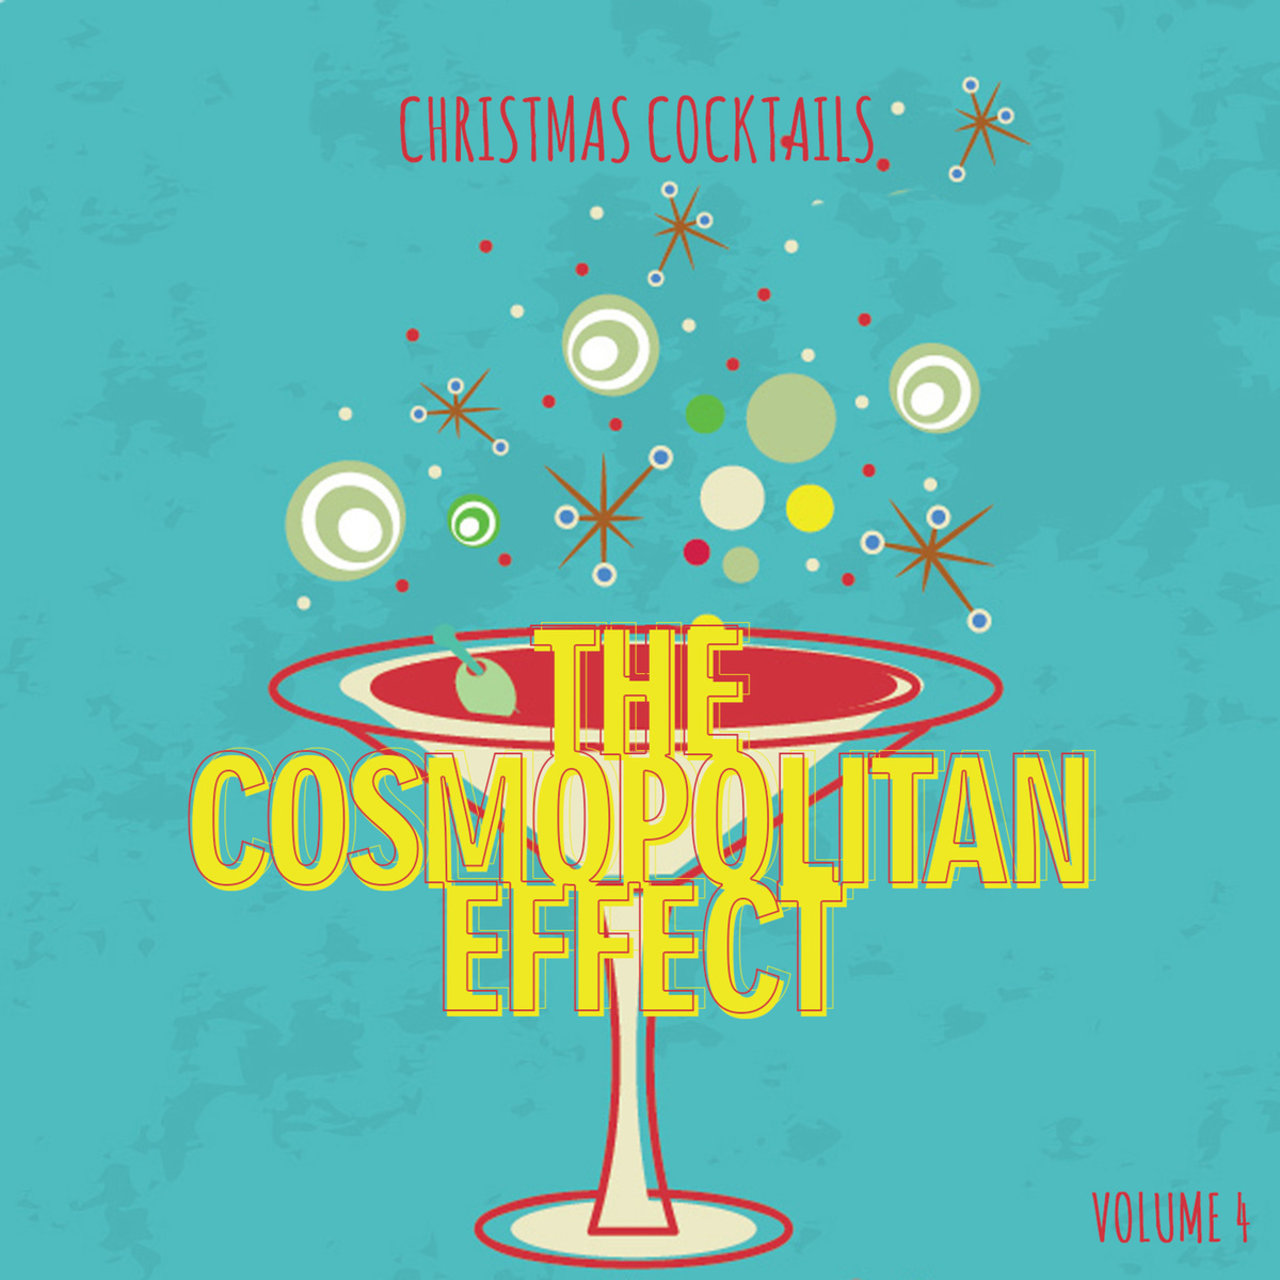 Christmas Cocktails: The Cosmopolitan Affect, Vol. 4